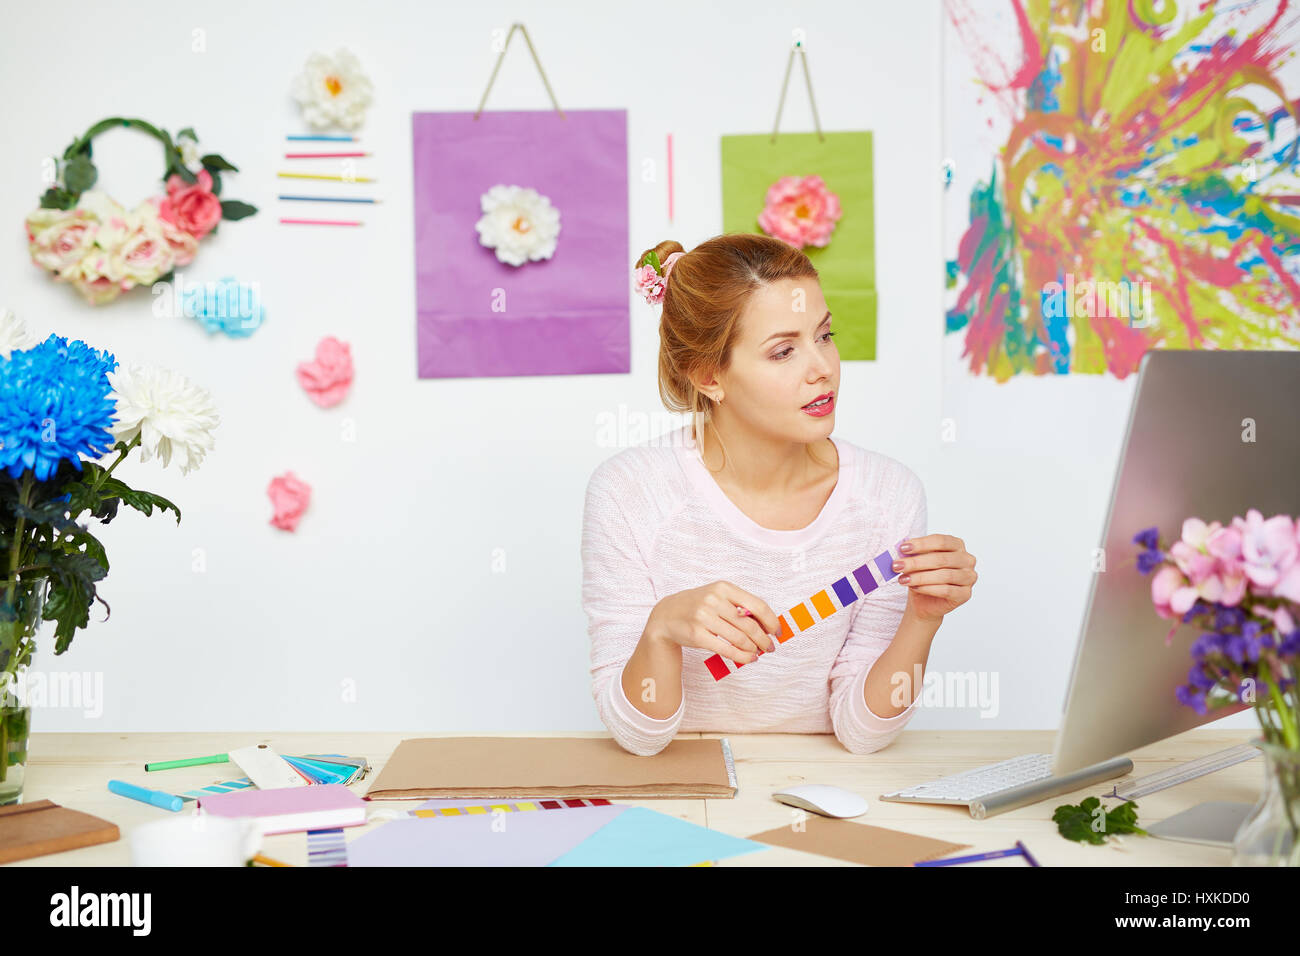 Interior designer at messy table - Stock Image